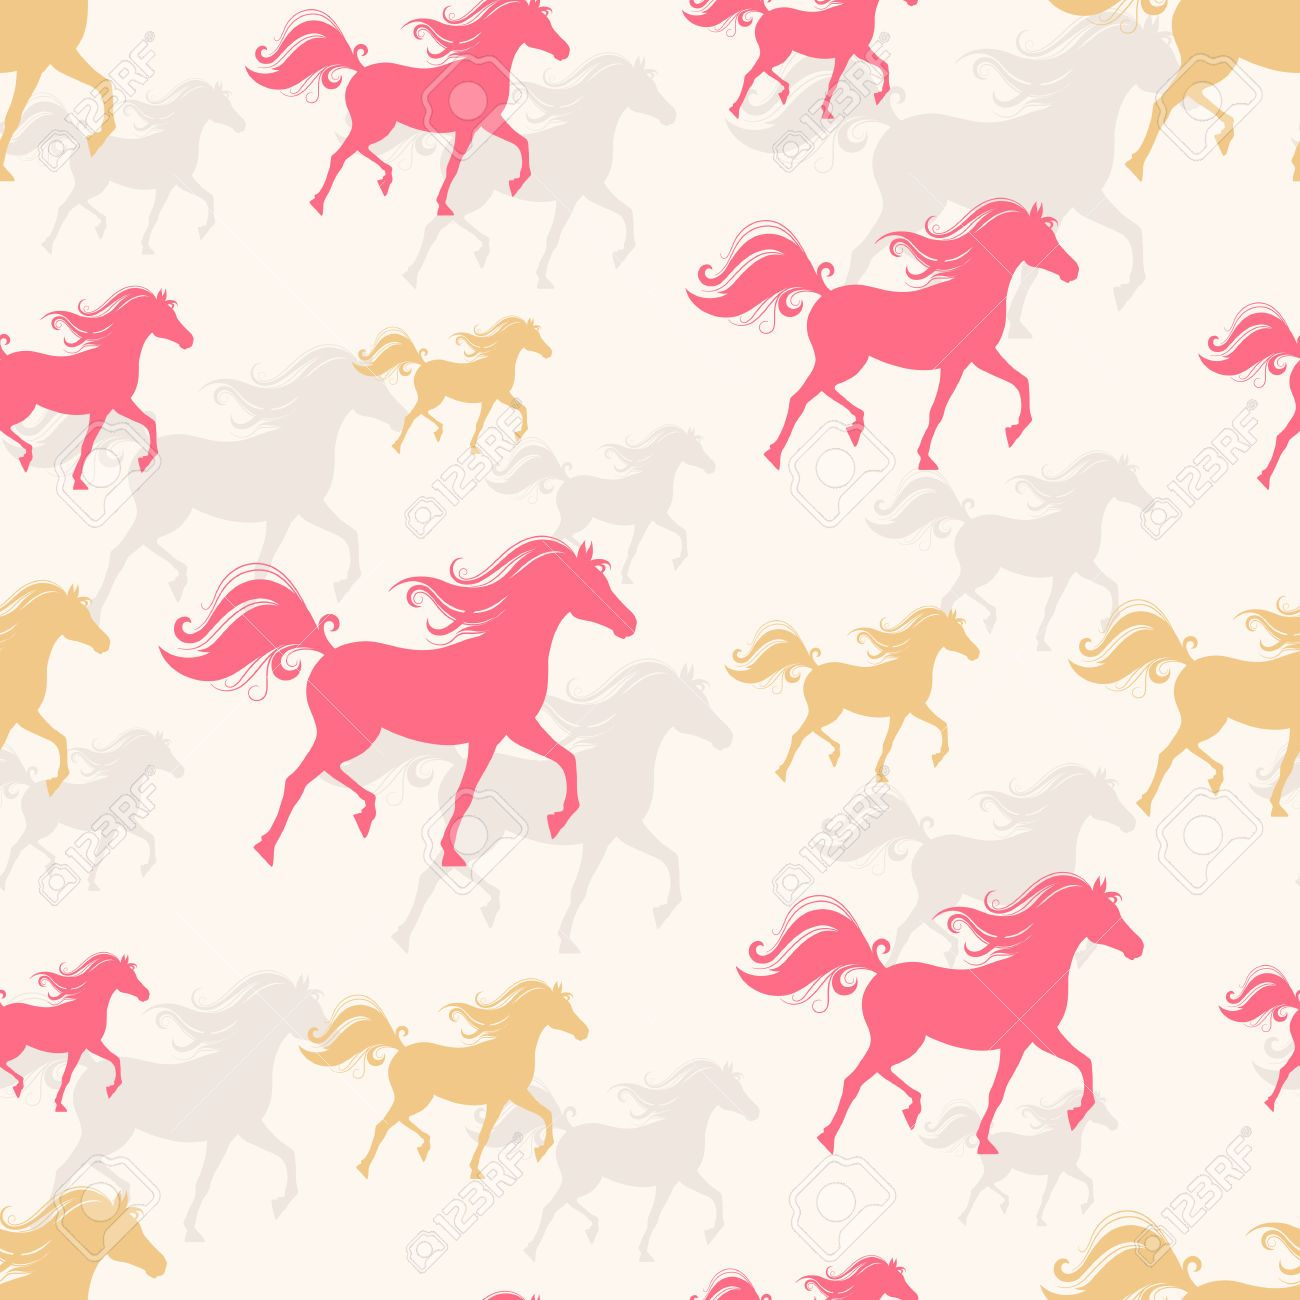 Fantastic Wallpaper Horse Pattern - 158a2f5dab012708953d4103c4a837a4  Best Photo Reference_206632.jpg